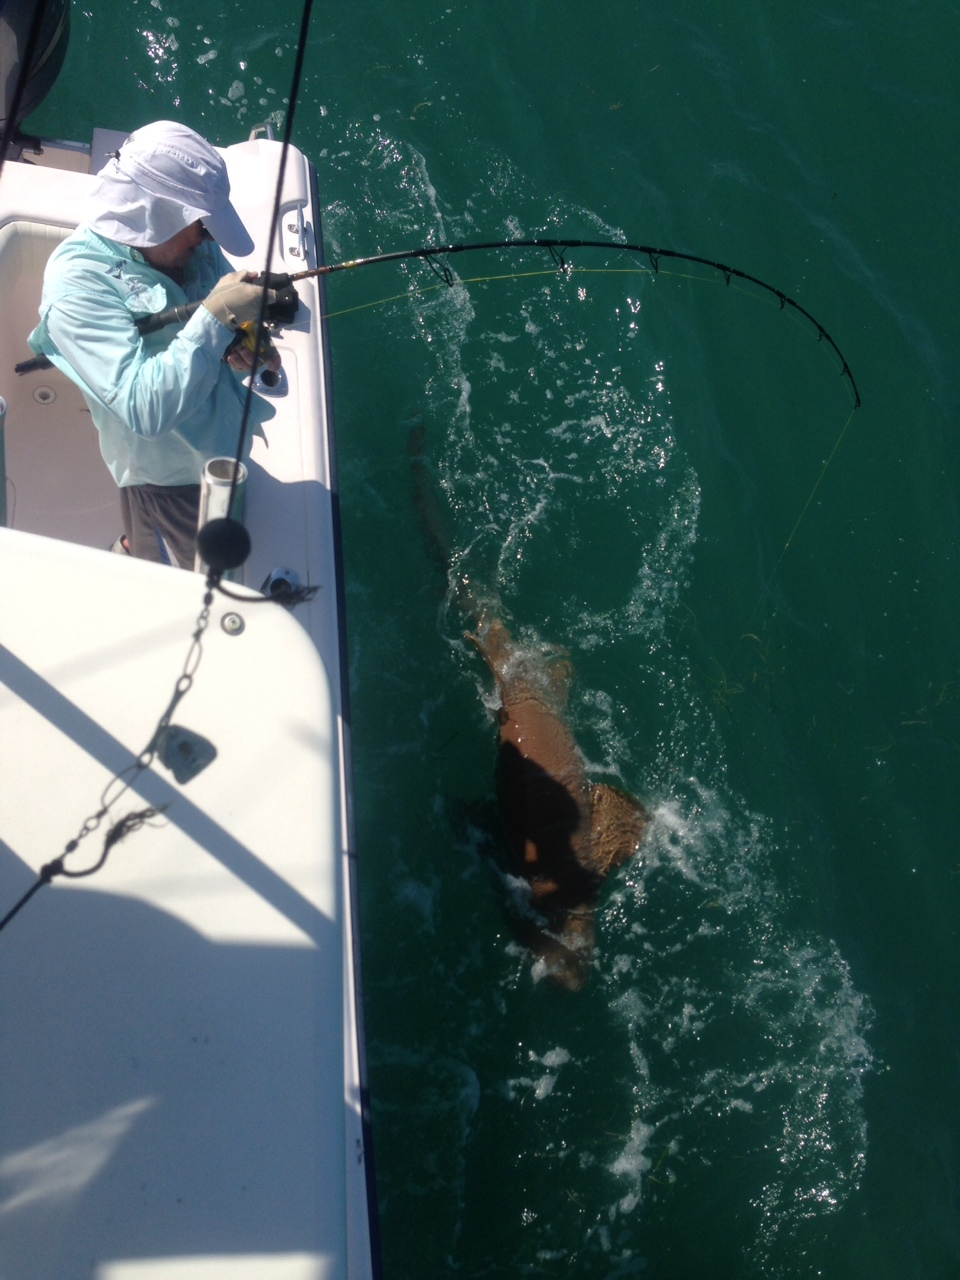 Big nurse shark fishing in the Gulf off Marathon in the Fl Keys.